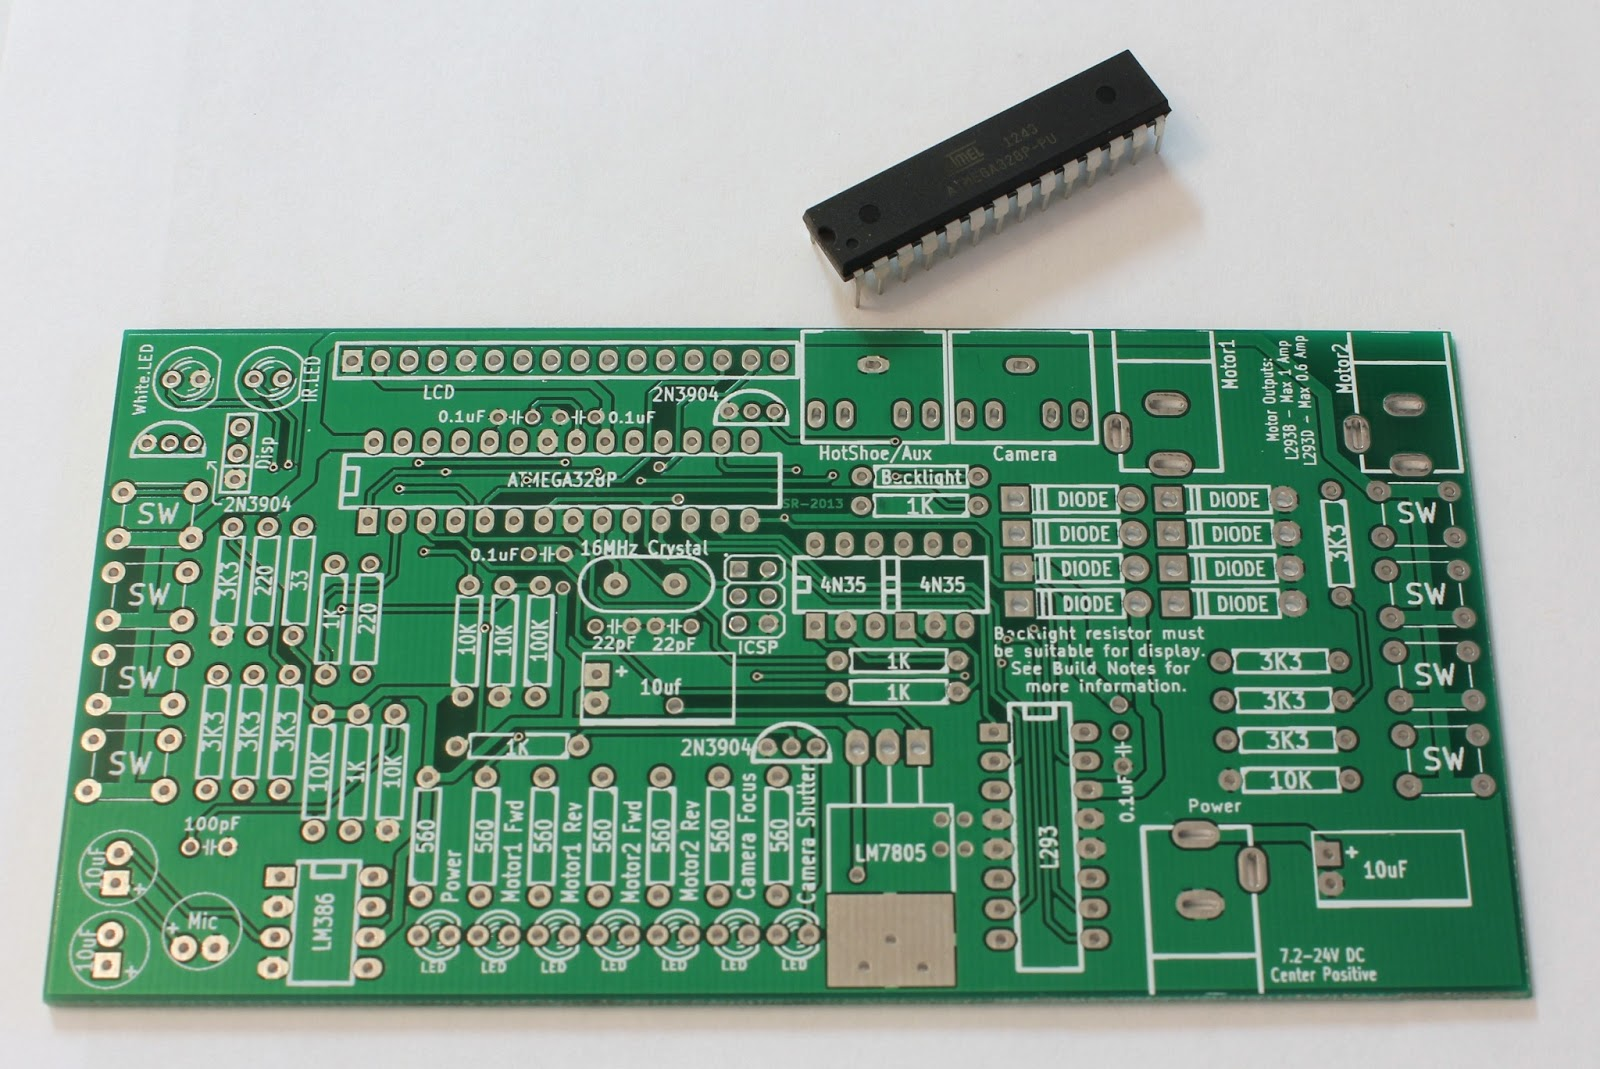 Jsr Intervalometers Intervalometer Diy General Build Notes Printed Circuit Board Assembly Pcb What You Will Get When Order Your Kit Is A And Atmega 328 Microcontroller Pre Programmed With The Software